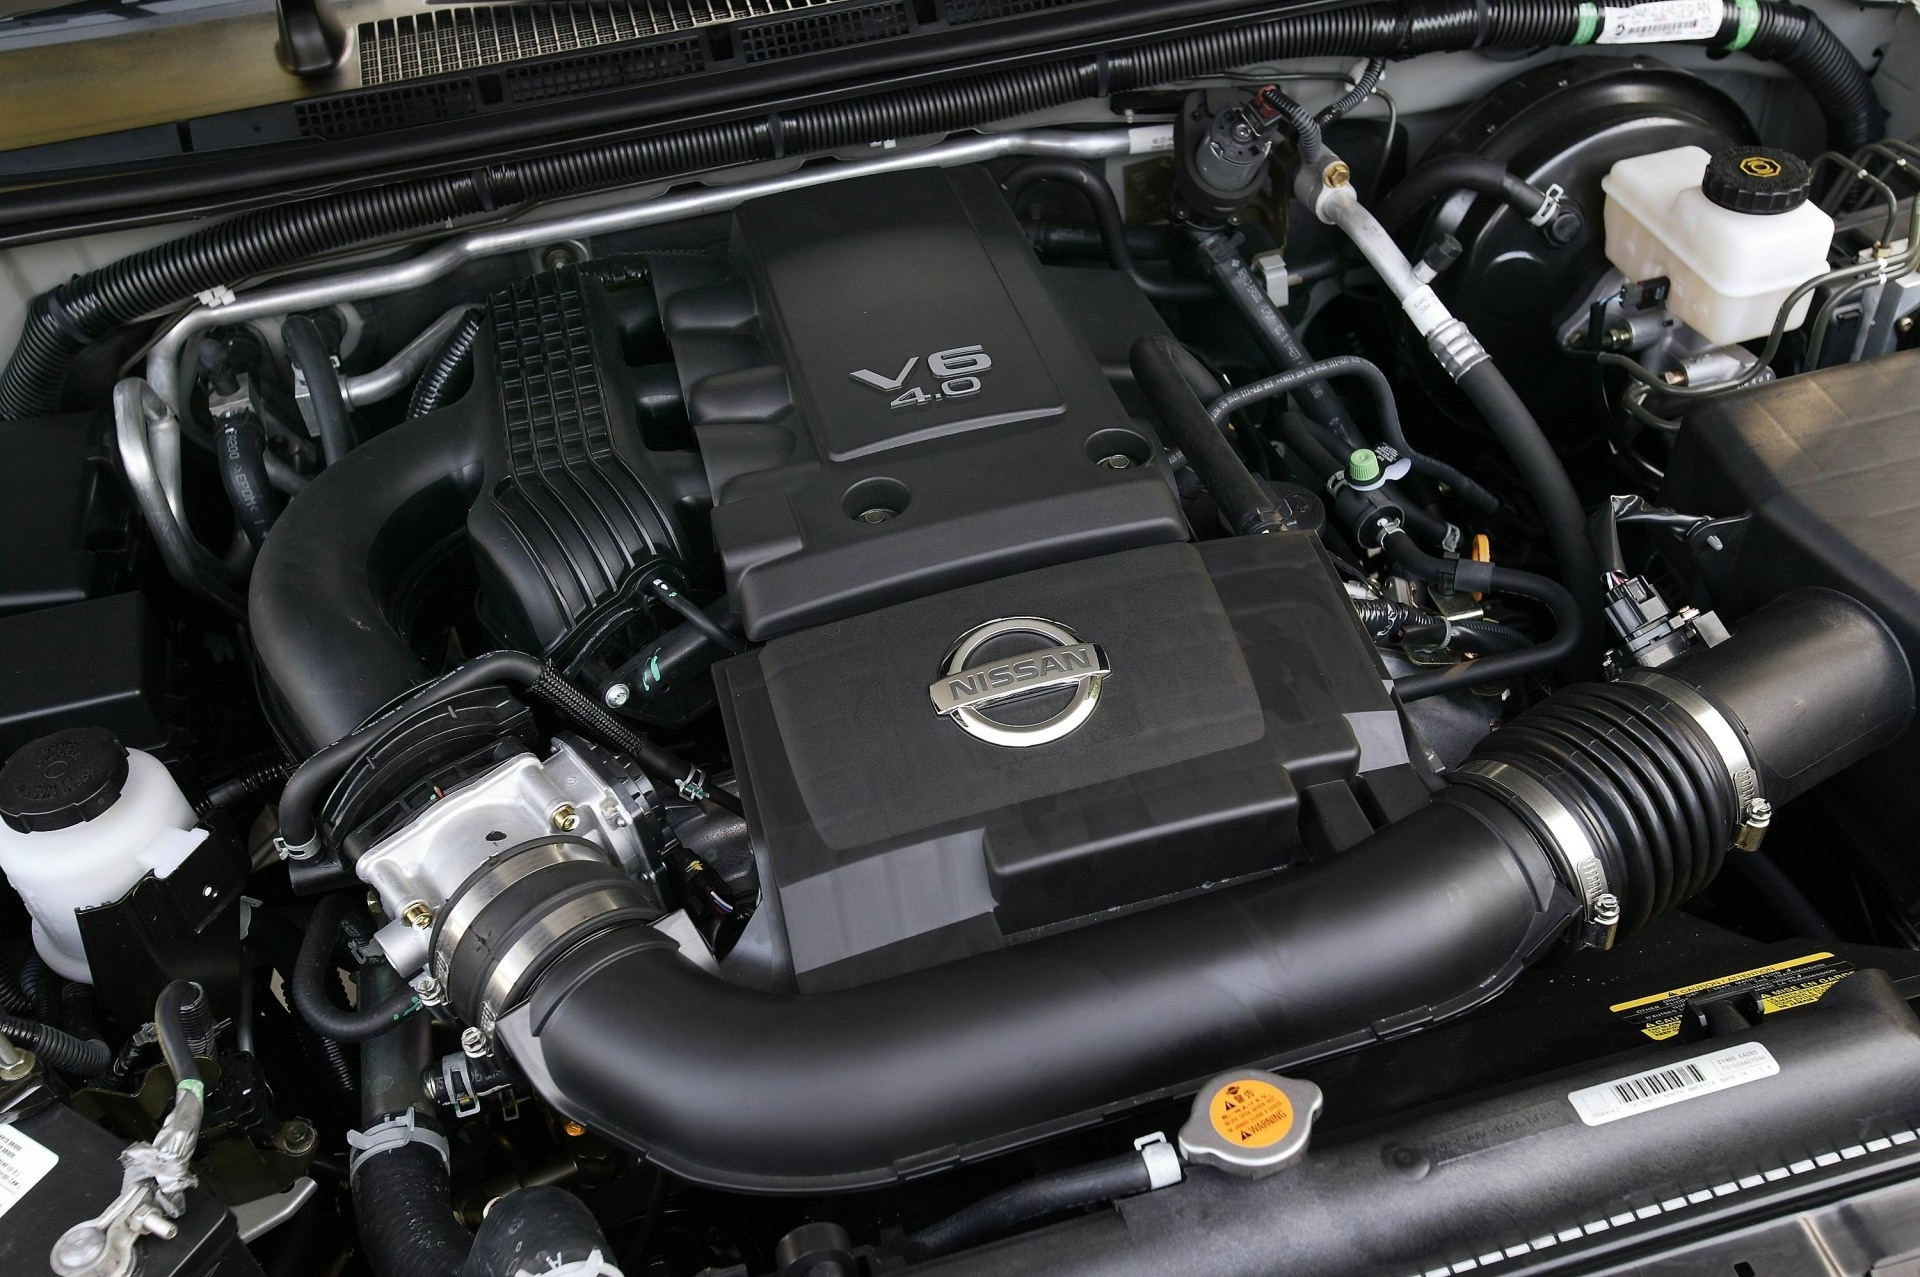 hight resolution of 2007 nissan pathfinder image photo 31 of 111 rh conceptcarz com 2007 nissan pathfinder engine parts